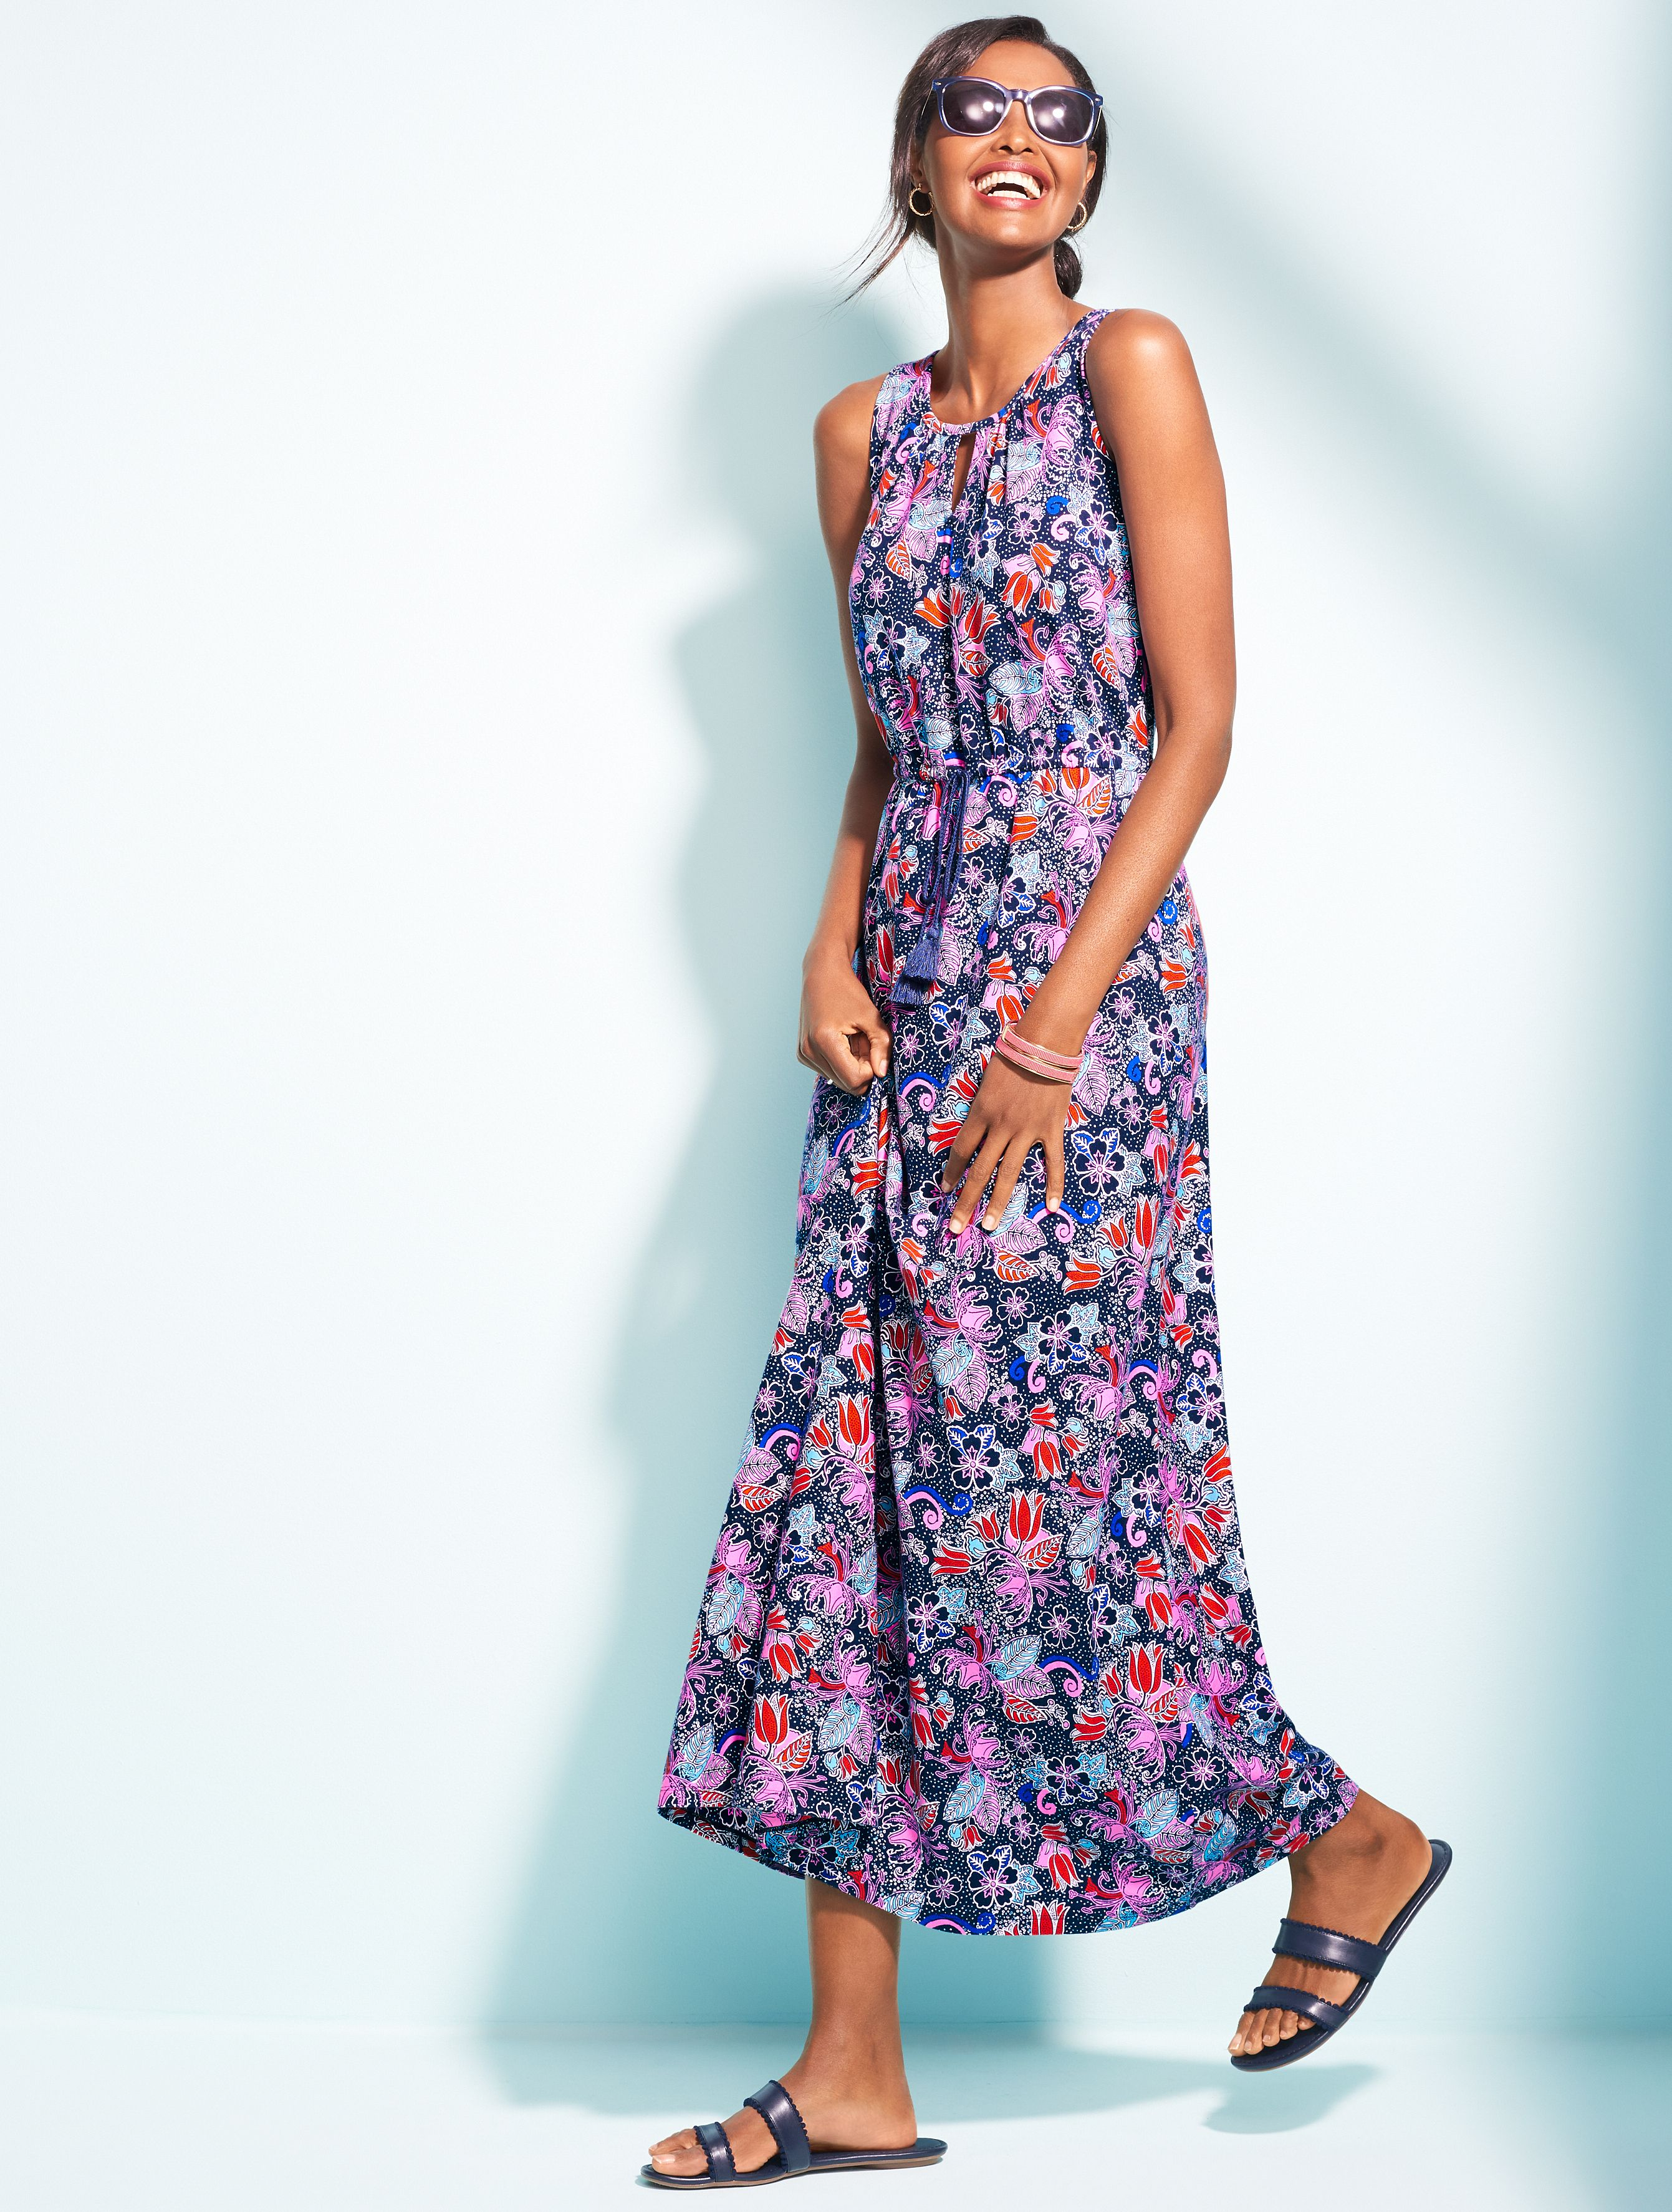 Our New Maxi Dress Embraces The Spirit Of Casual With Its Floral And Festive Print Made From A Fluid Jersey This Must Ha Dresses Floral Maxi Dress Maxi Dress [ 3548 x 2682 Pixel ]